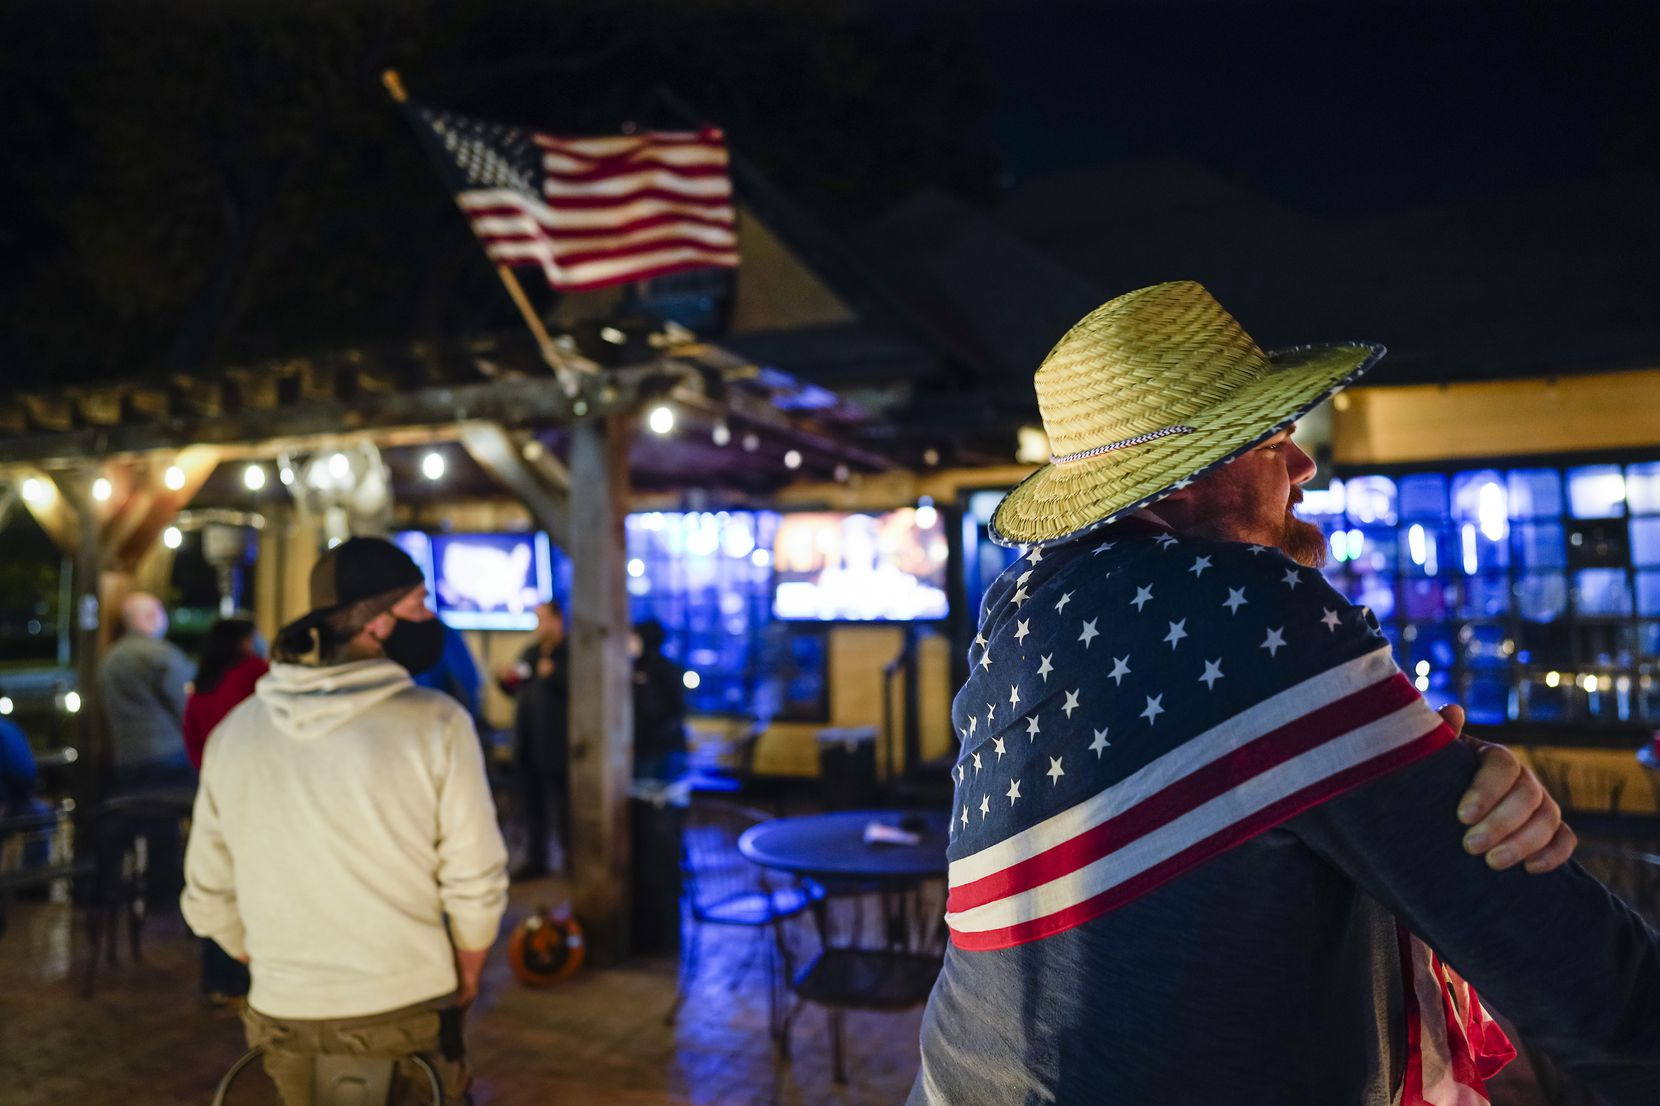 Elliot Fischer (right) wears a flag scarf as he joins others watching election results at Uptown Pub on McKinney on Election Day, Tuesday, Nov. 3, 2020, in Dallas. (Smiley N. Pool/The Dallas Morning News)